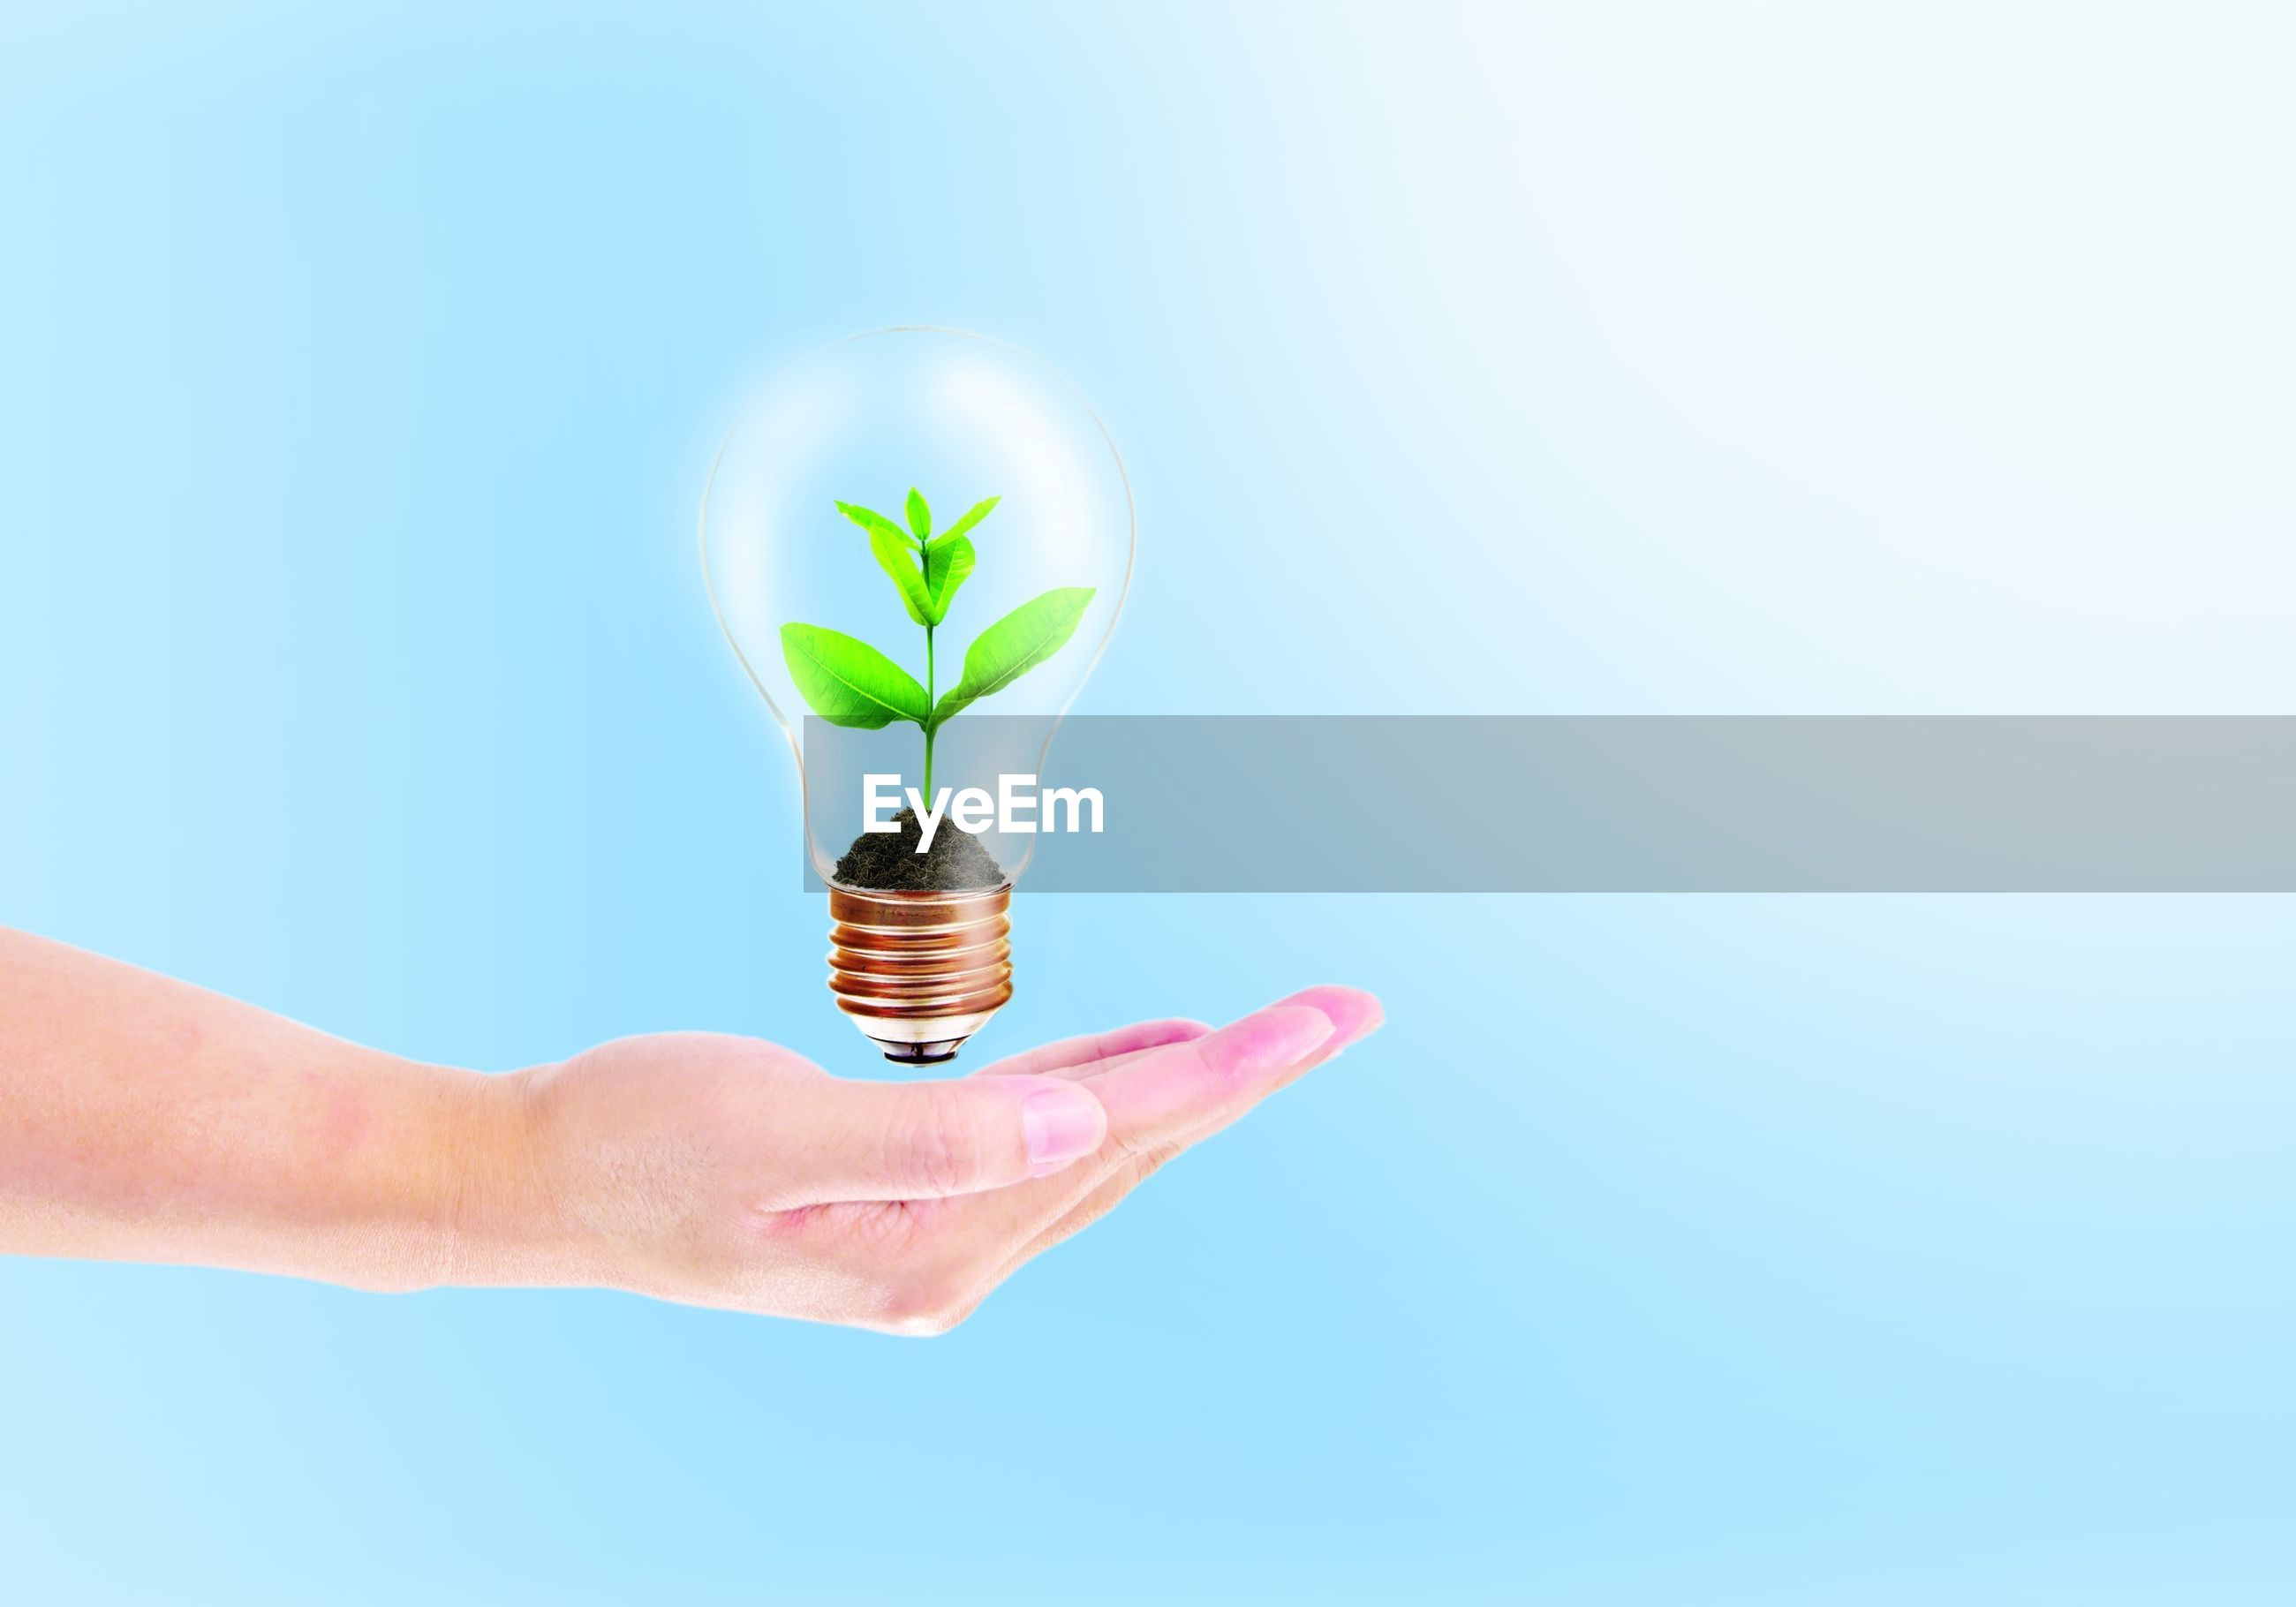 Digital composite image of hand levitating bulb with plant against blue background